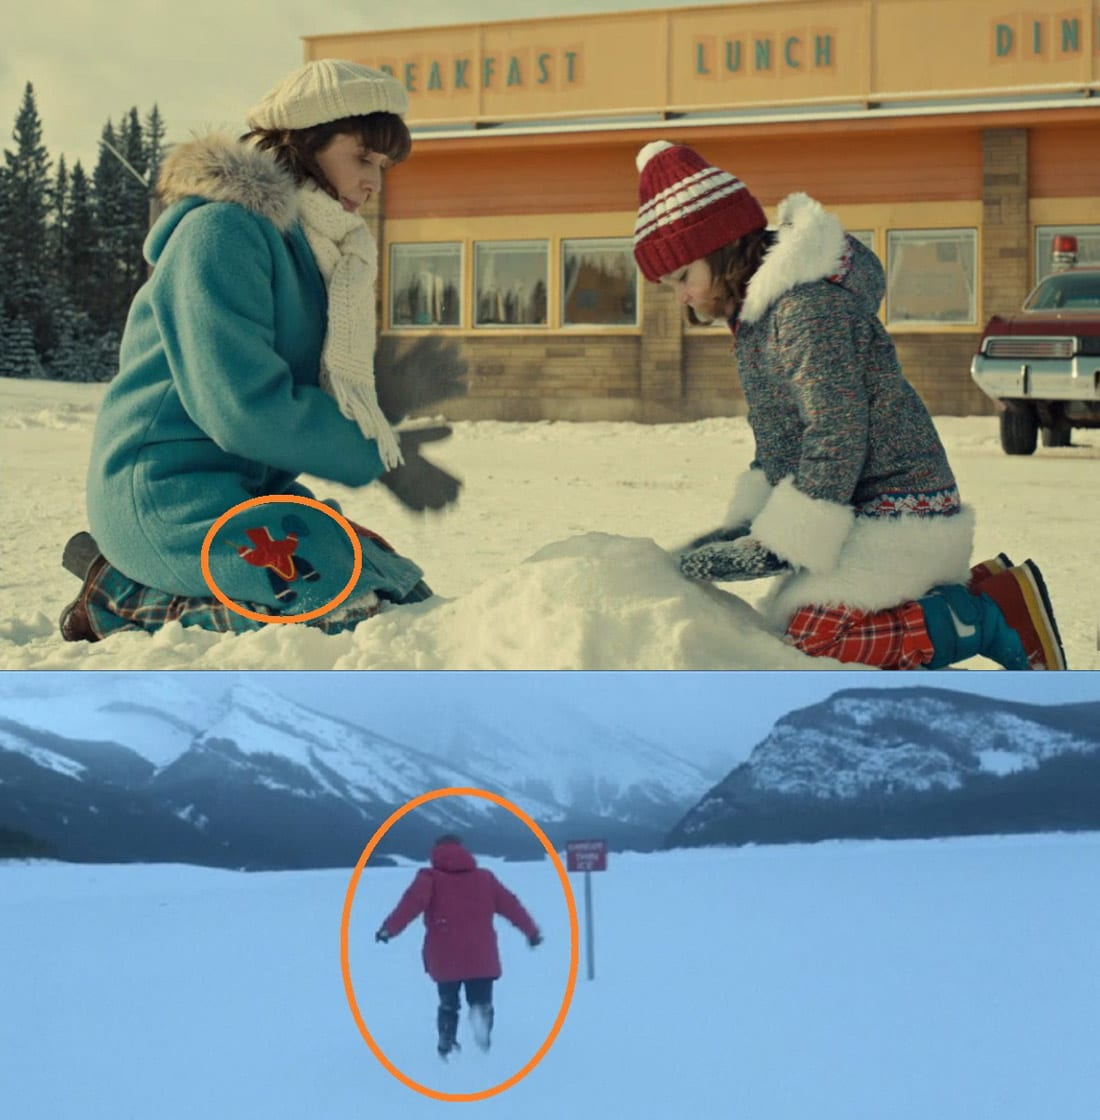 fargo-season-2-reference-1